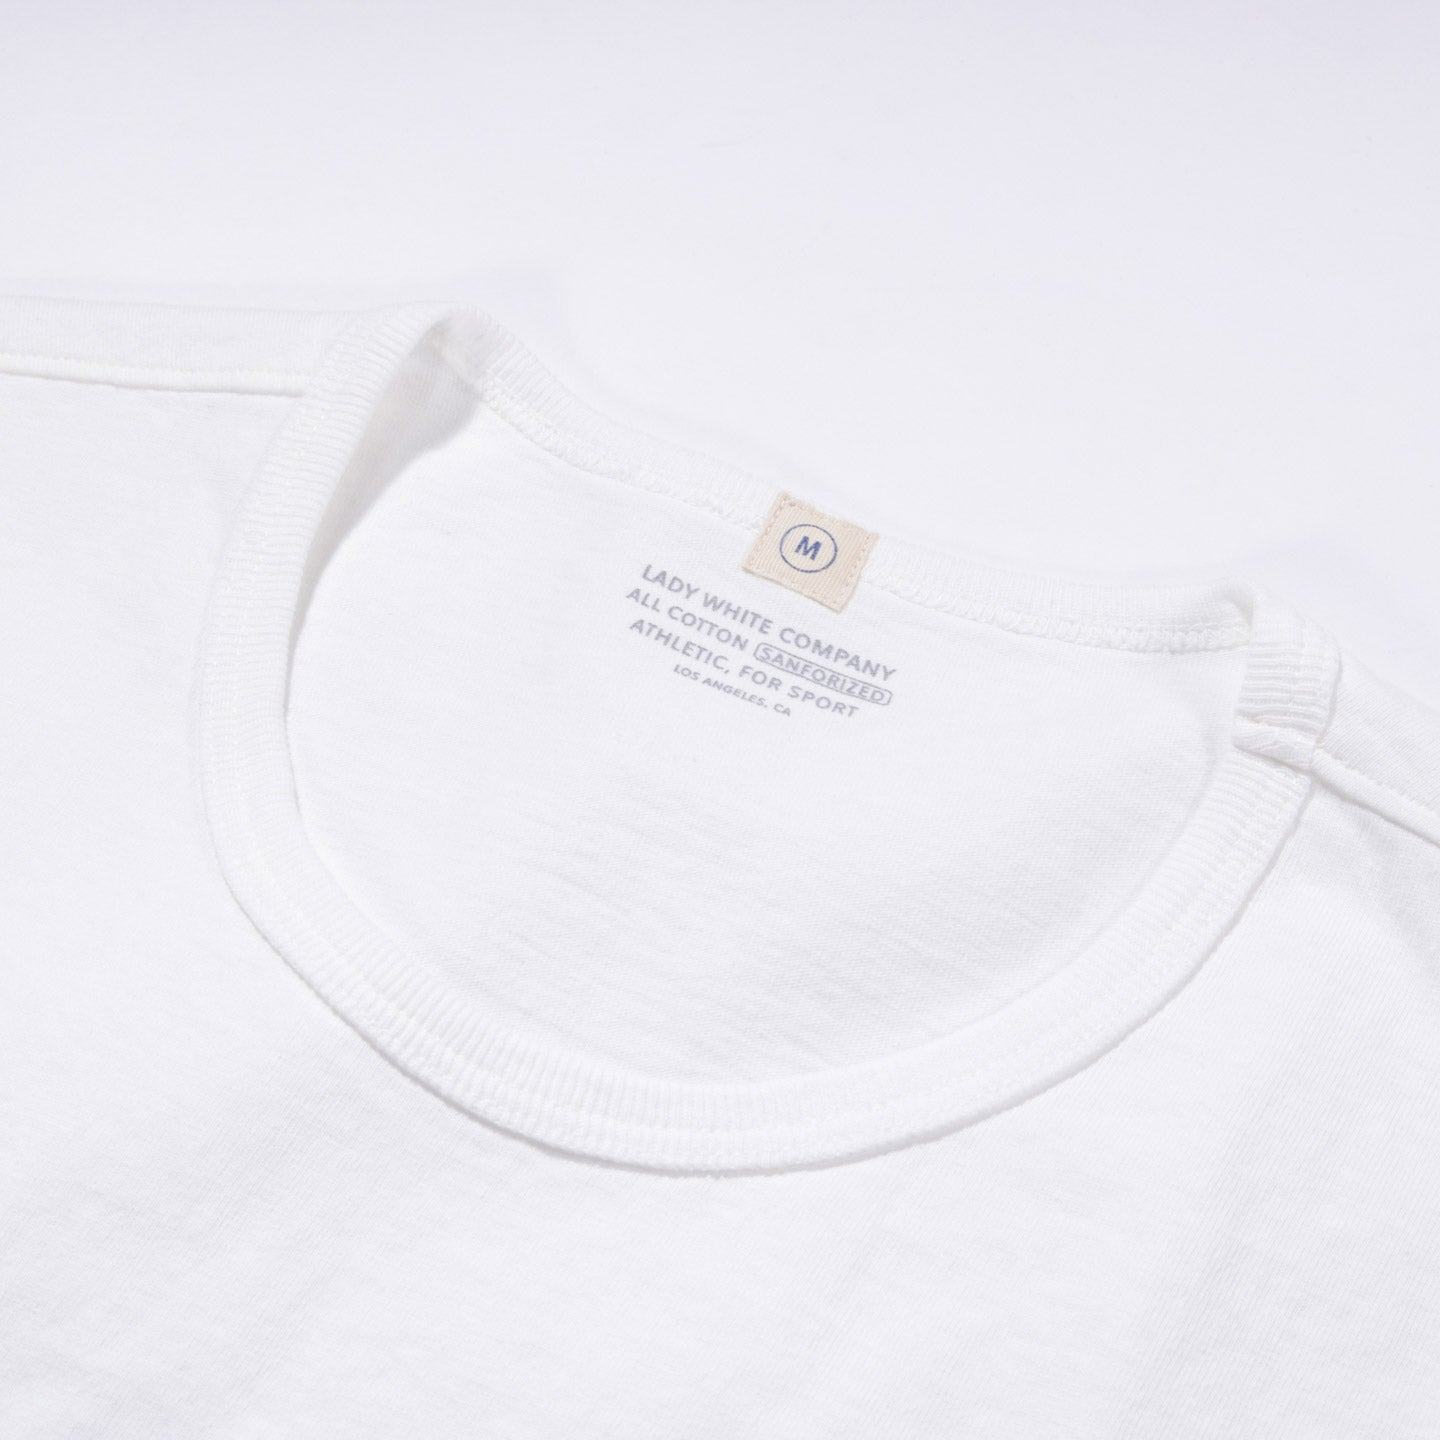 LADY WHITE CO. T-SHIRT 2-PACK WHITE